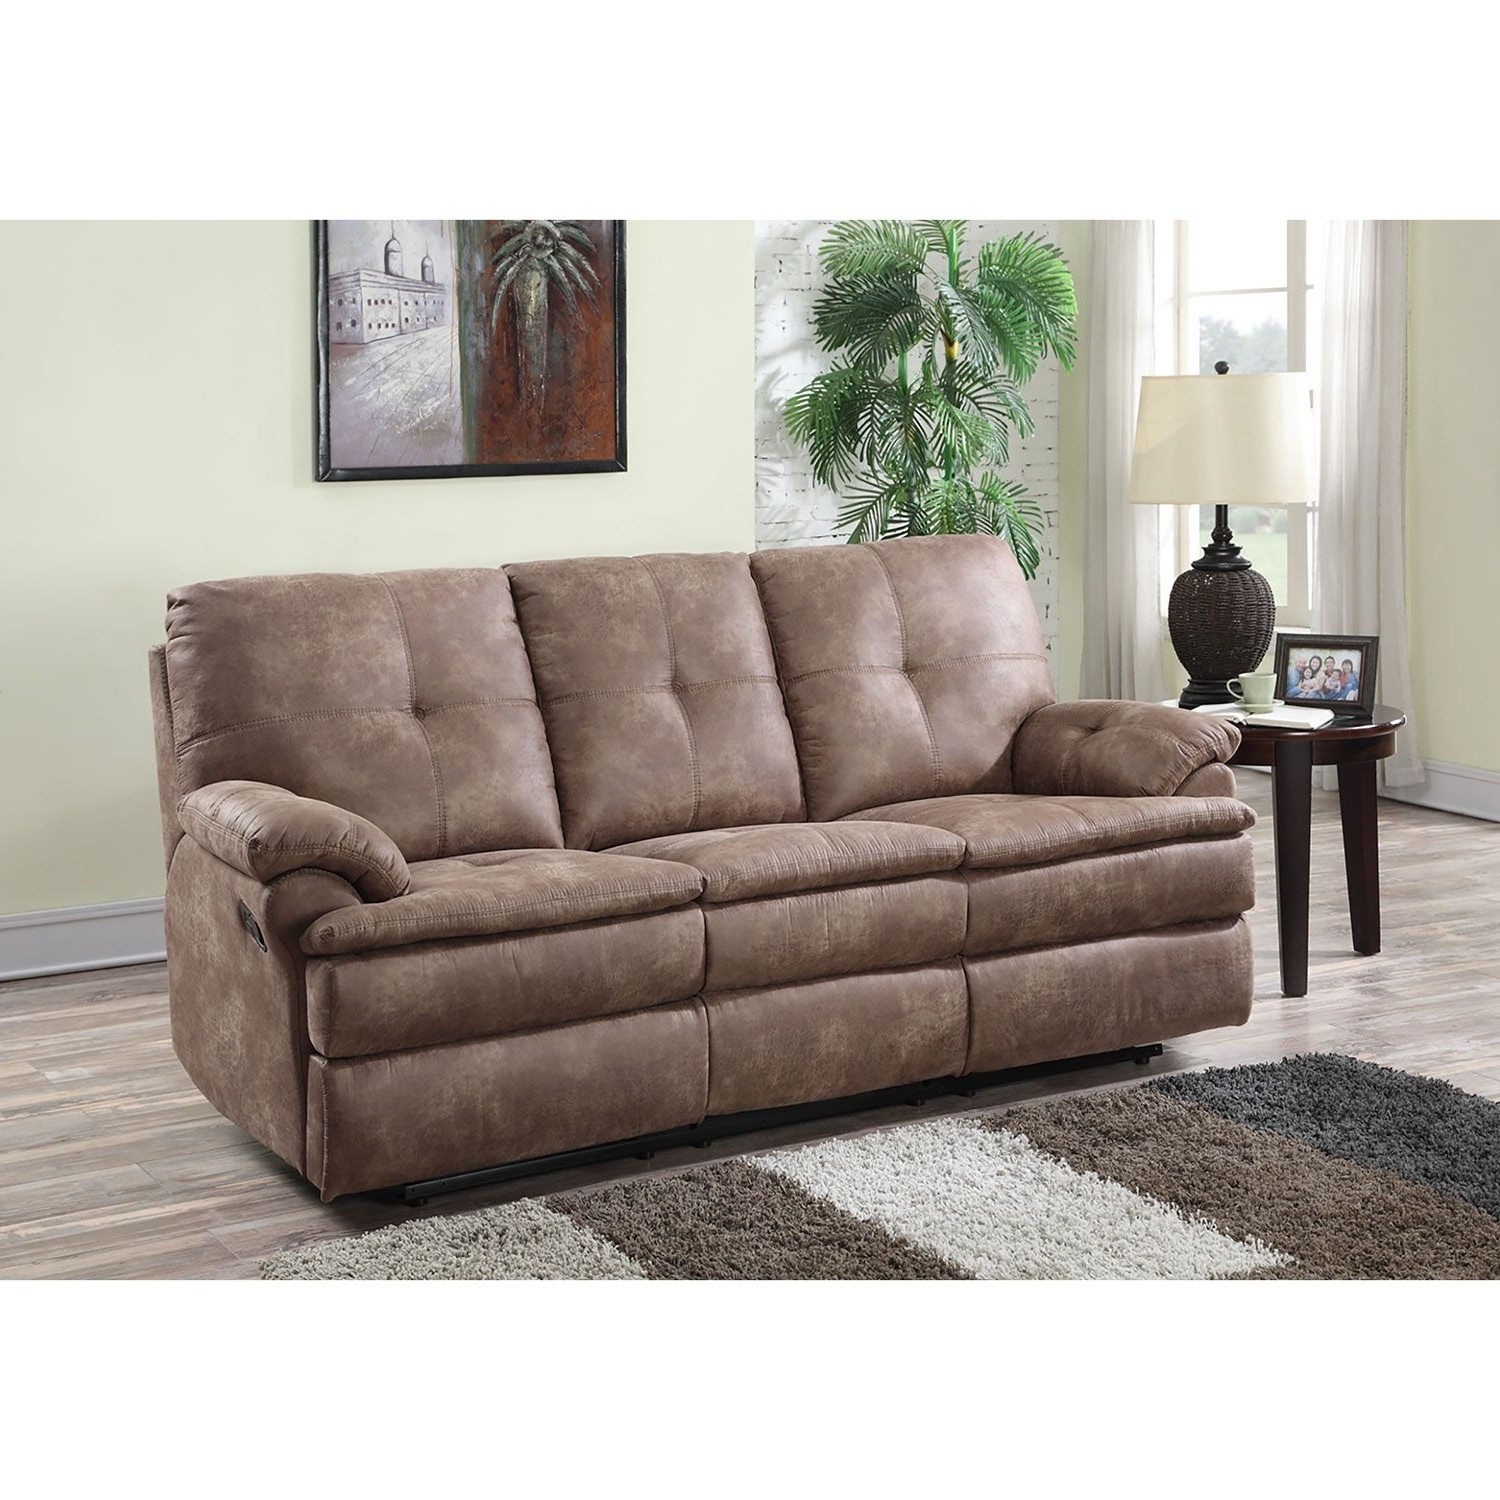 Most Recent Sams Club Sectional Sofas Within Sofa : Two Seater Fabric Recliner Sofa Fabric Reclining Sofa And (View 15 of 15)